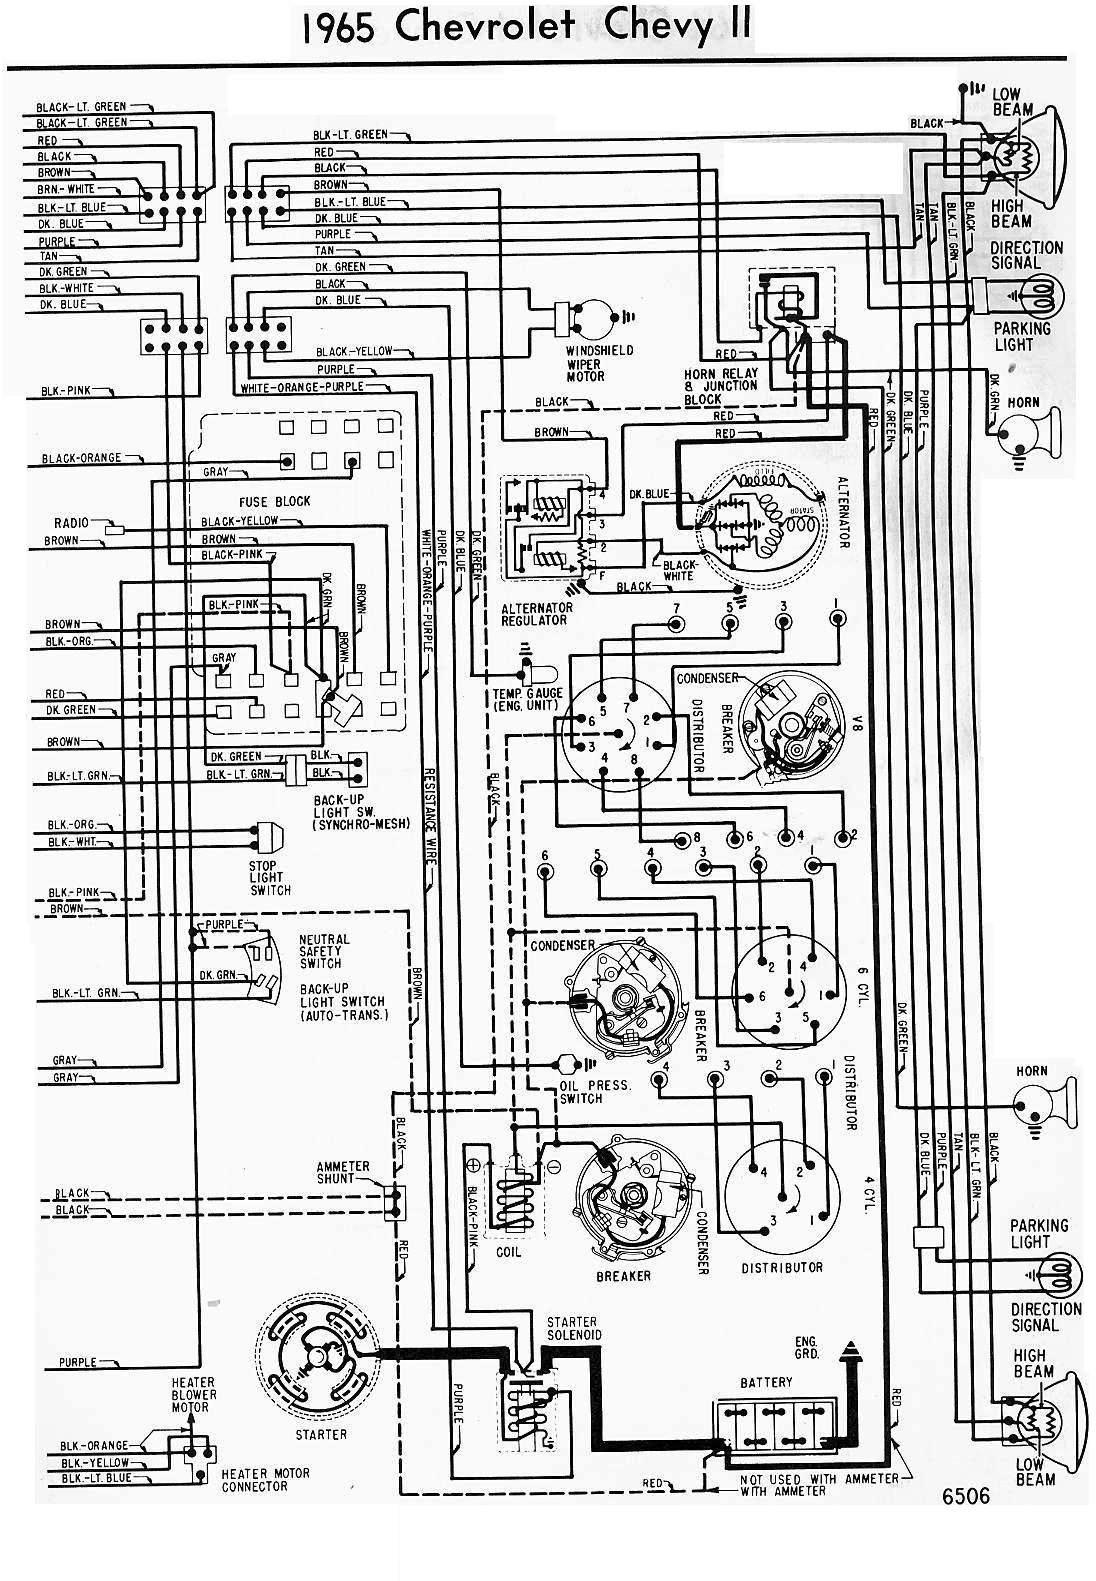 small resolution of 1964 chevy ii wiring diagram 1964 chevy impala ignition wiring diagramrh svlc us